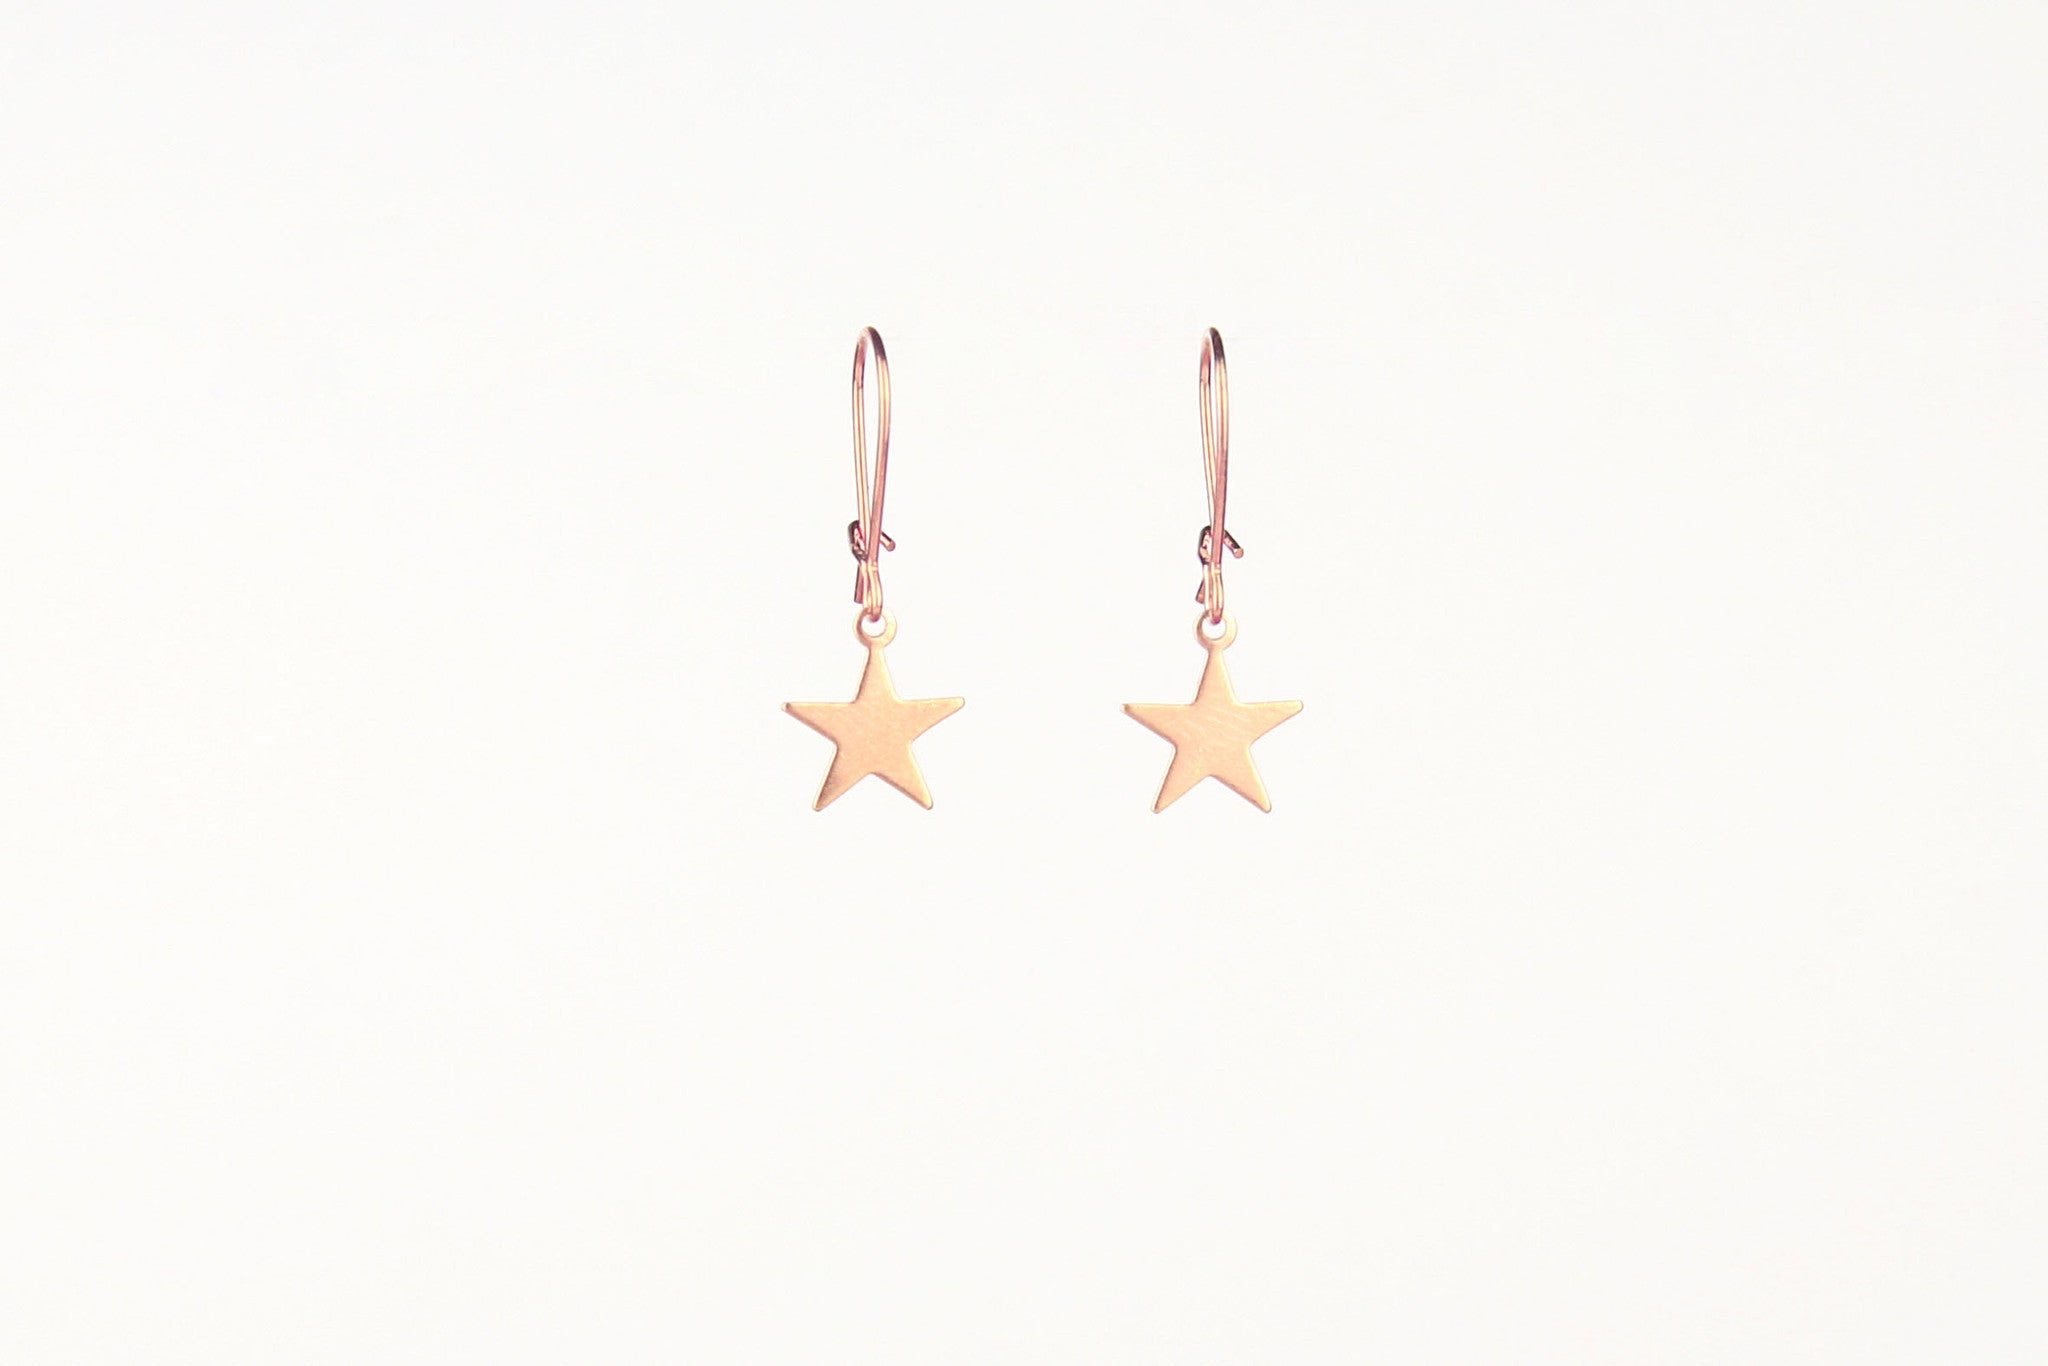 jewelberry ohrringe earrings plain star red gold plated sterling silver fine jewelry handmade with love fairtrade